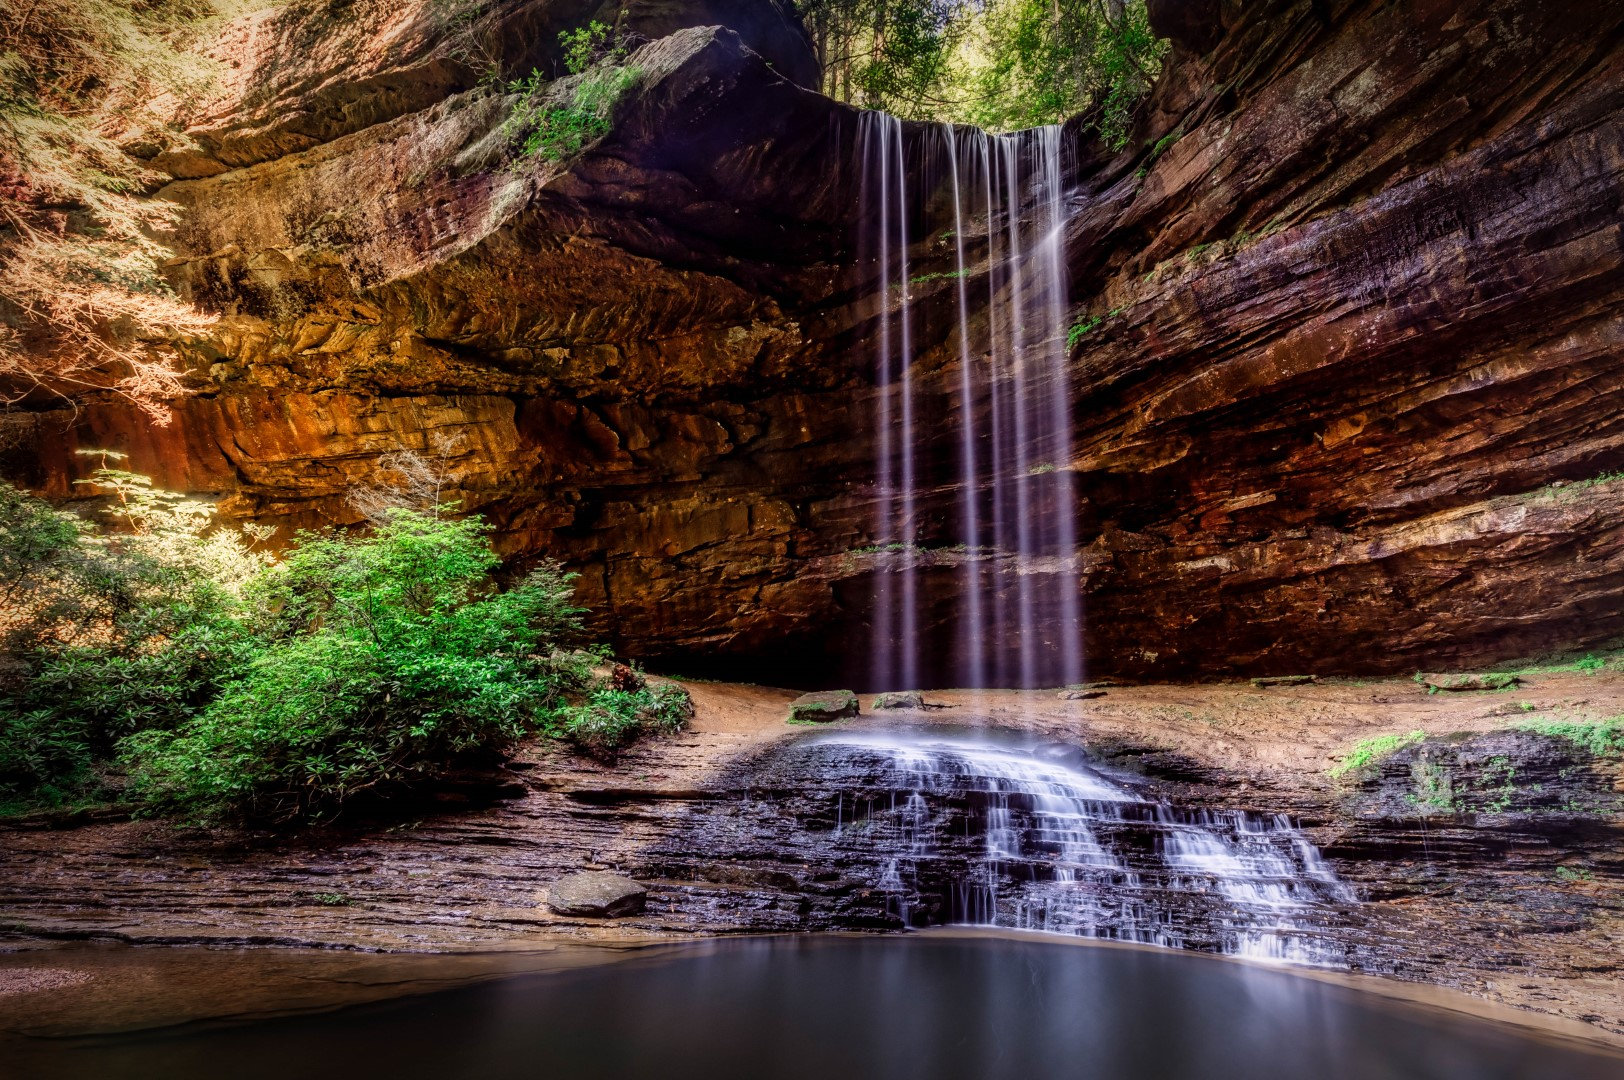 60 ft. high Falls in the Colditz Cove State Natural Area